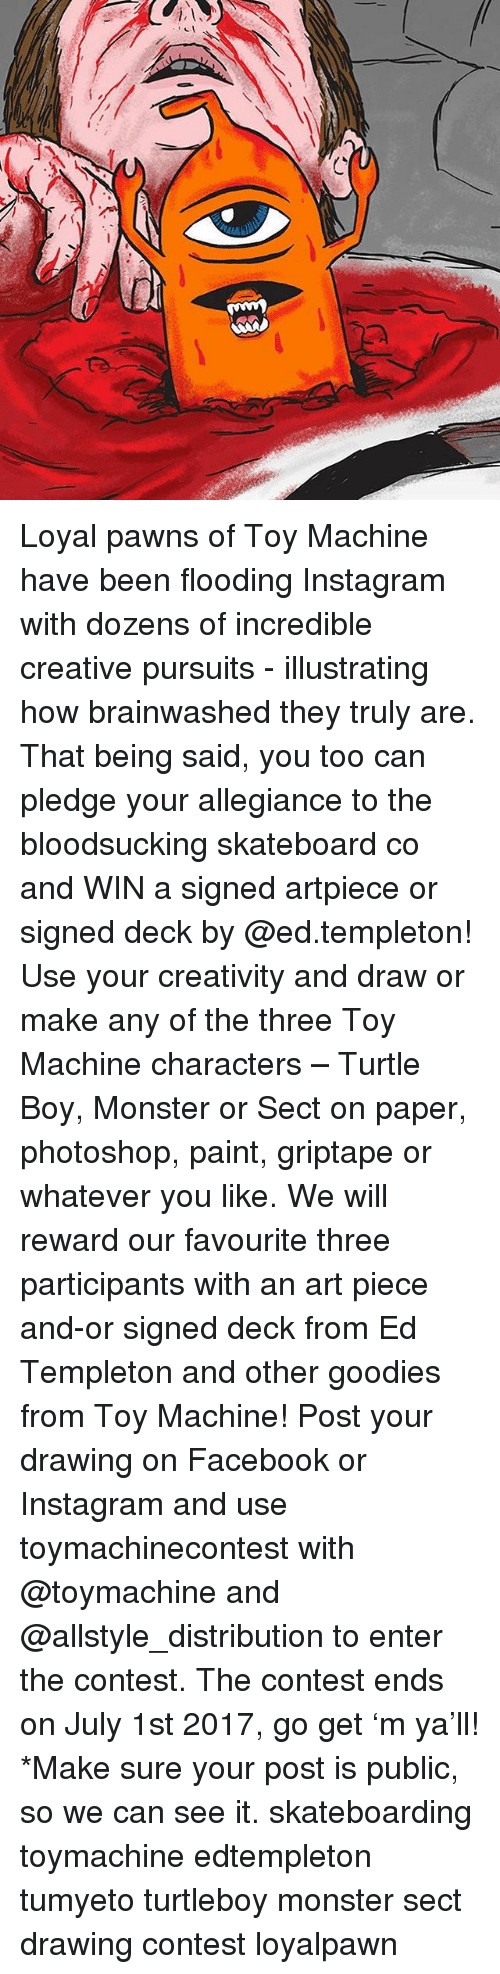 Facebook, Instagram, and Memes: C Loyal pawns of Toy Machine have been flooding Instagram with dozens of incredible creative pursuits - illustrating how brainwashed they truly are. That being said, you too can pledge your allegiance to the bloodsucking skateboard co and WIN a signed artpiece or signed deck by @ed.templeton! Use your creativity and draw or make any of the three Toy Machine characters – Turtle Boy, Monster or Sect on paper, photoshop, paint, griptape or whatever you like. We will reward our favourite three participants with an art piece and-or signed deck from Ed Templeton and other goodies from Toy Machine! Post your drawing on Facebook or Instagram and use toymachinecontest with @toymachine and @allstyle_distribution to enter the contest. The contest ends on July 1st 2017, go get 'm ya'll! *Make sure your post is public, so we can see it. skateboarding toymachine edtempleton tumyeto turtleboy monster sect drawing contest loyalpawn